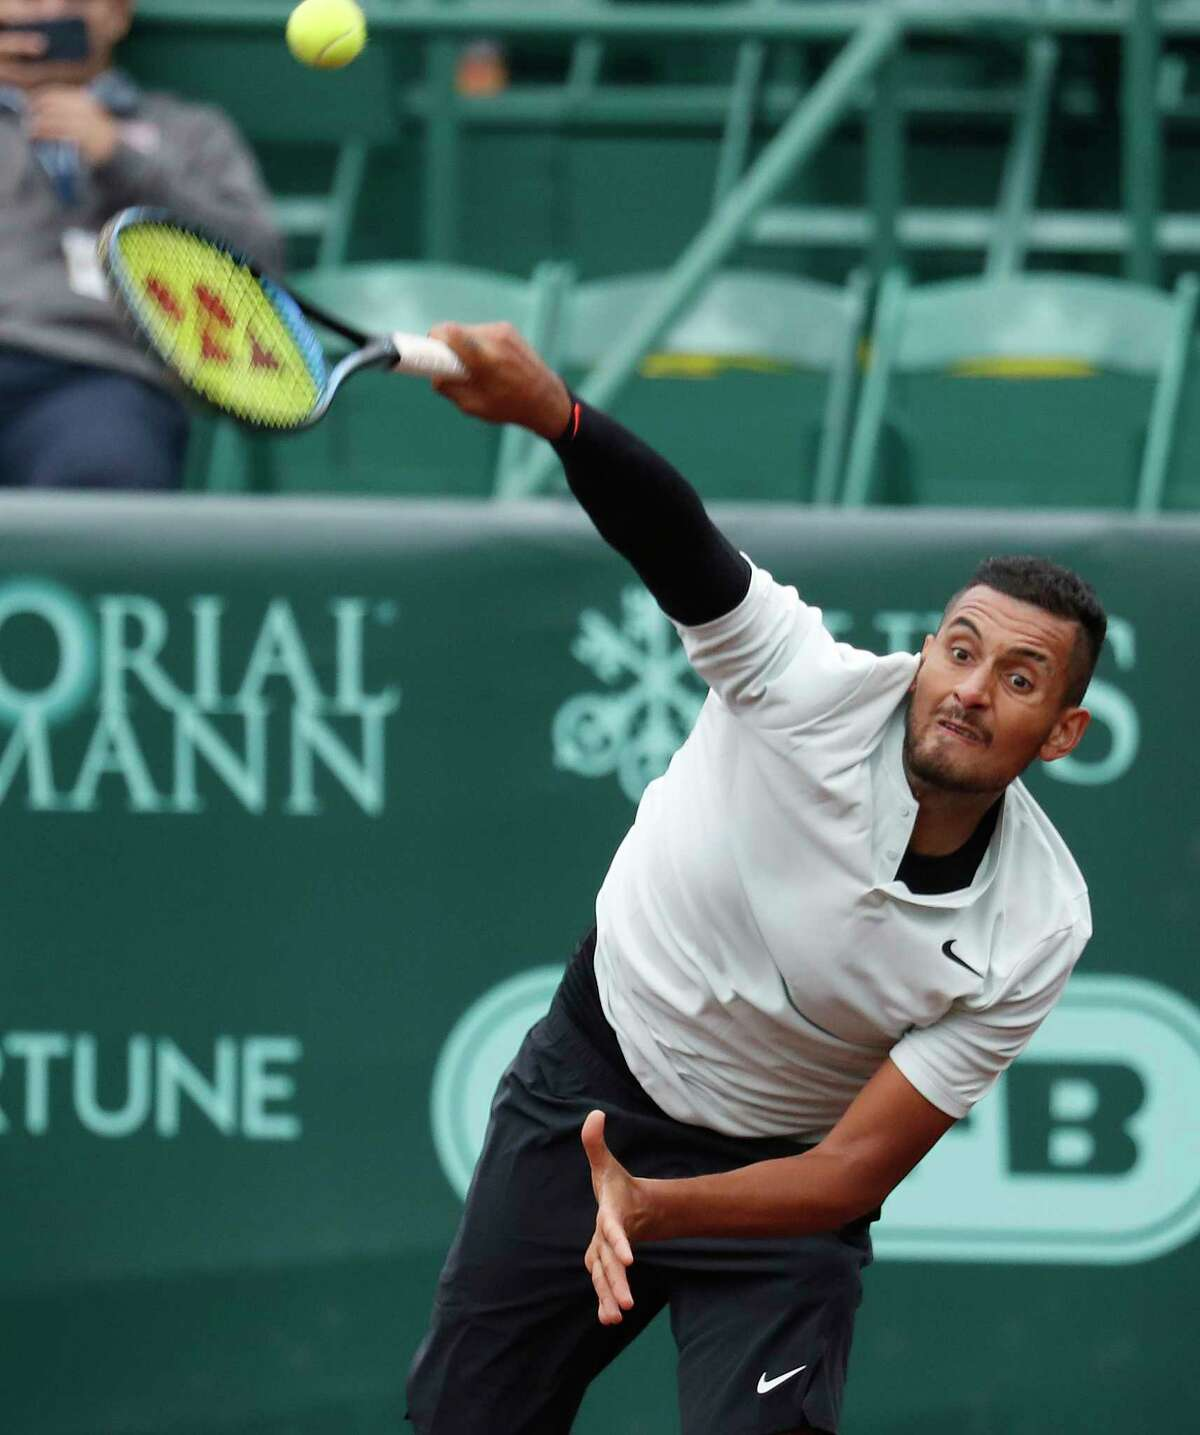 Nick Kyrgios serves in the first round of doubles with Matt Reid during the U.S. Men's Clay Court Championship at River Oaks Country Club, Monday, April 9, 2018, in Houston.